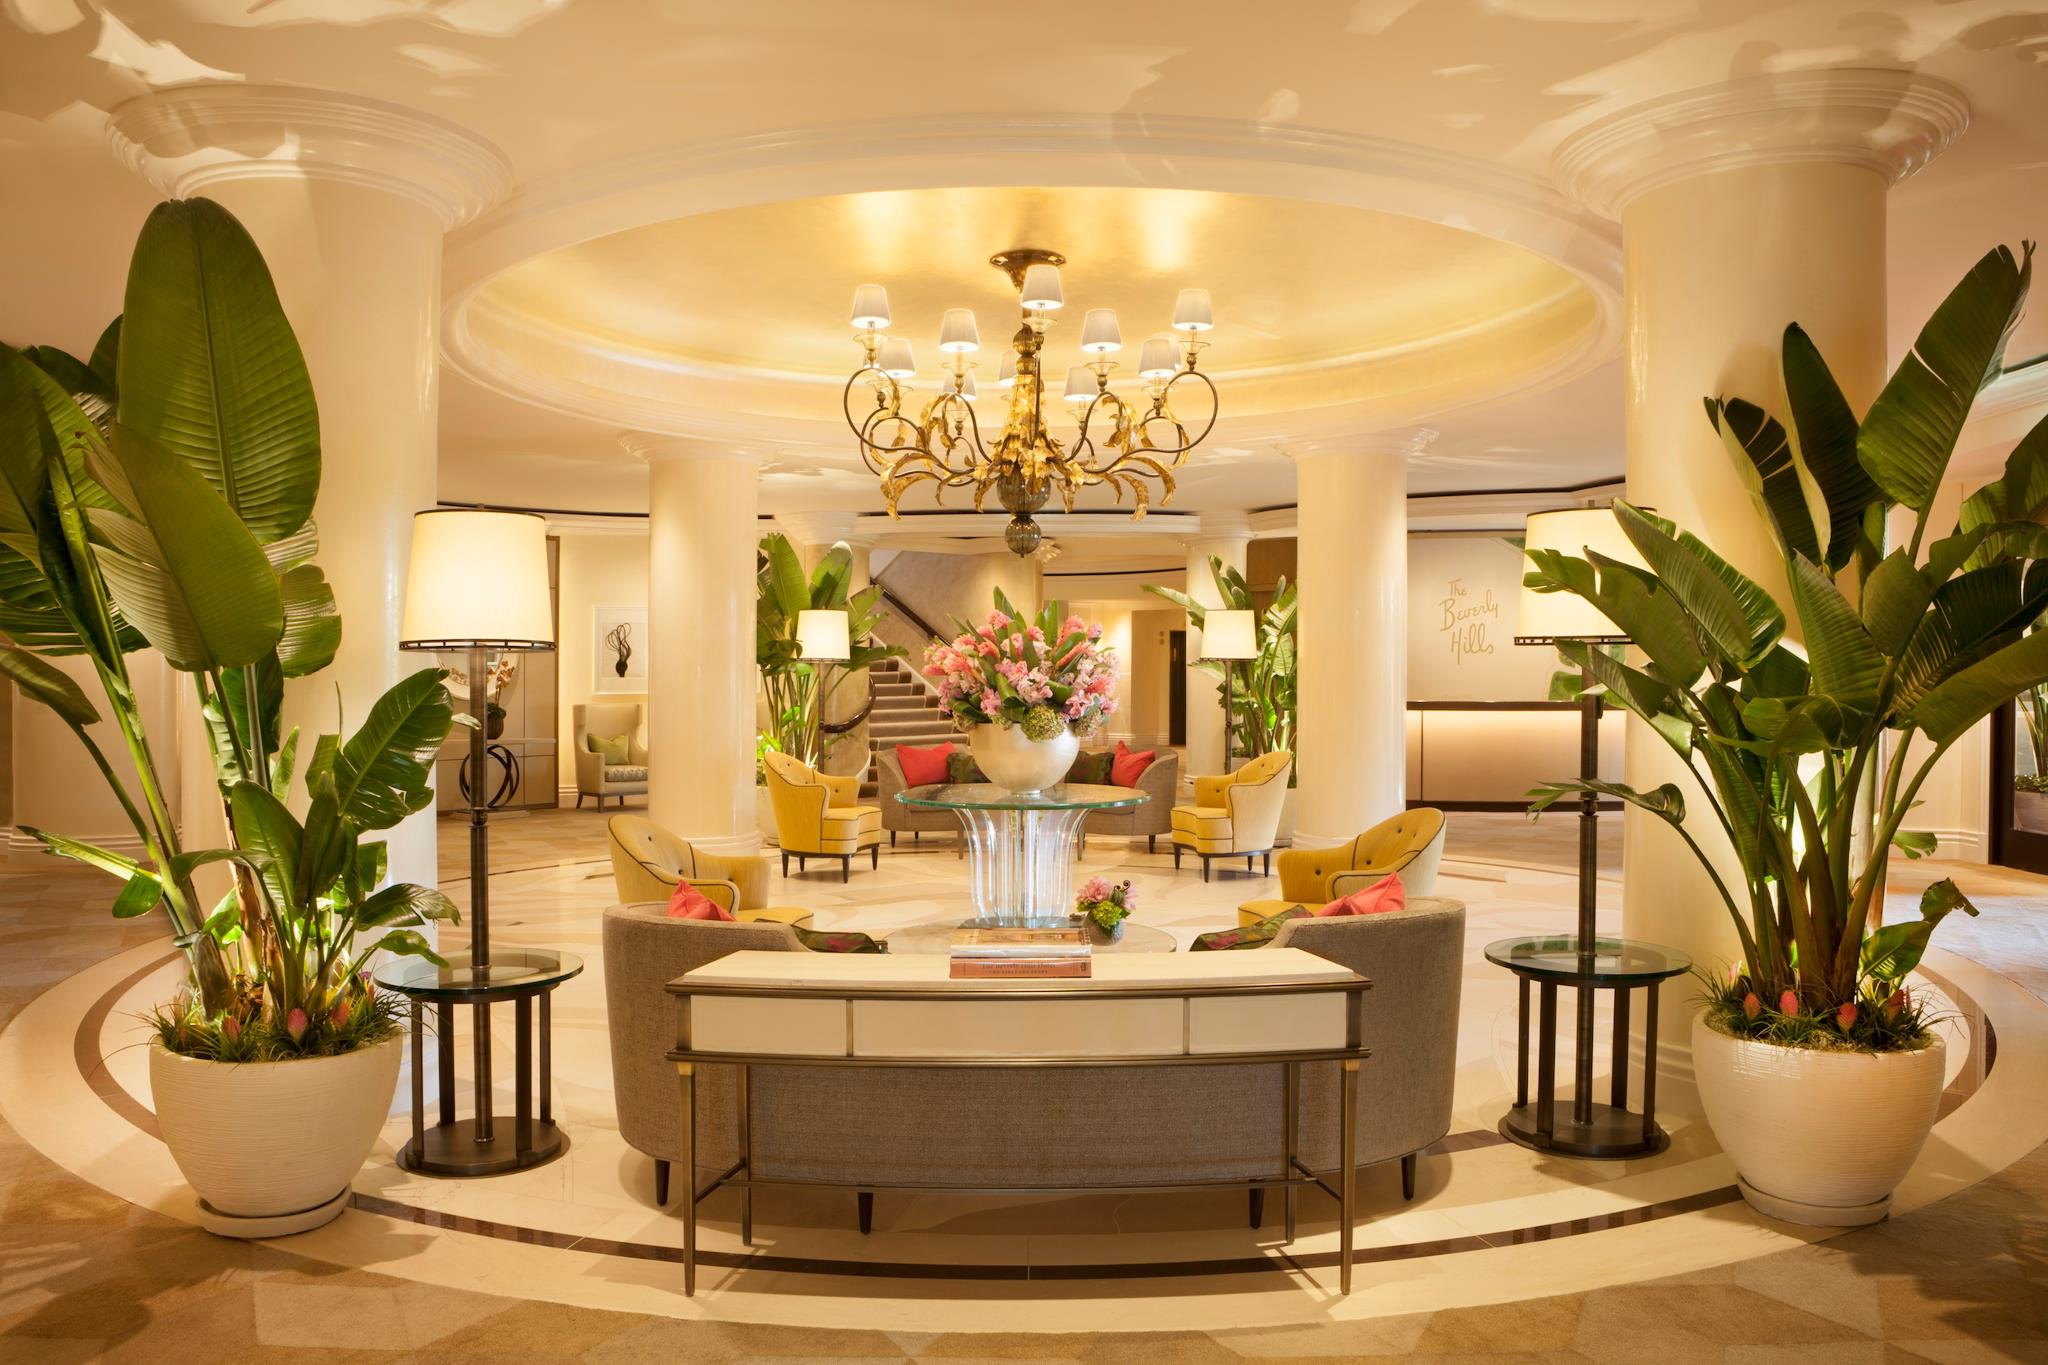 Tropical modern d cor at the beverly hills hotel Interior design plants inside house